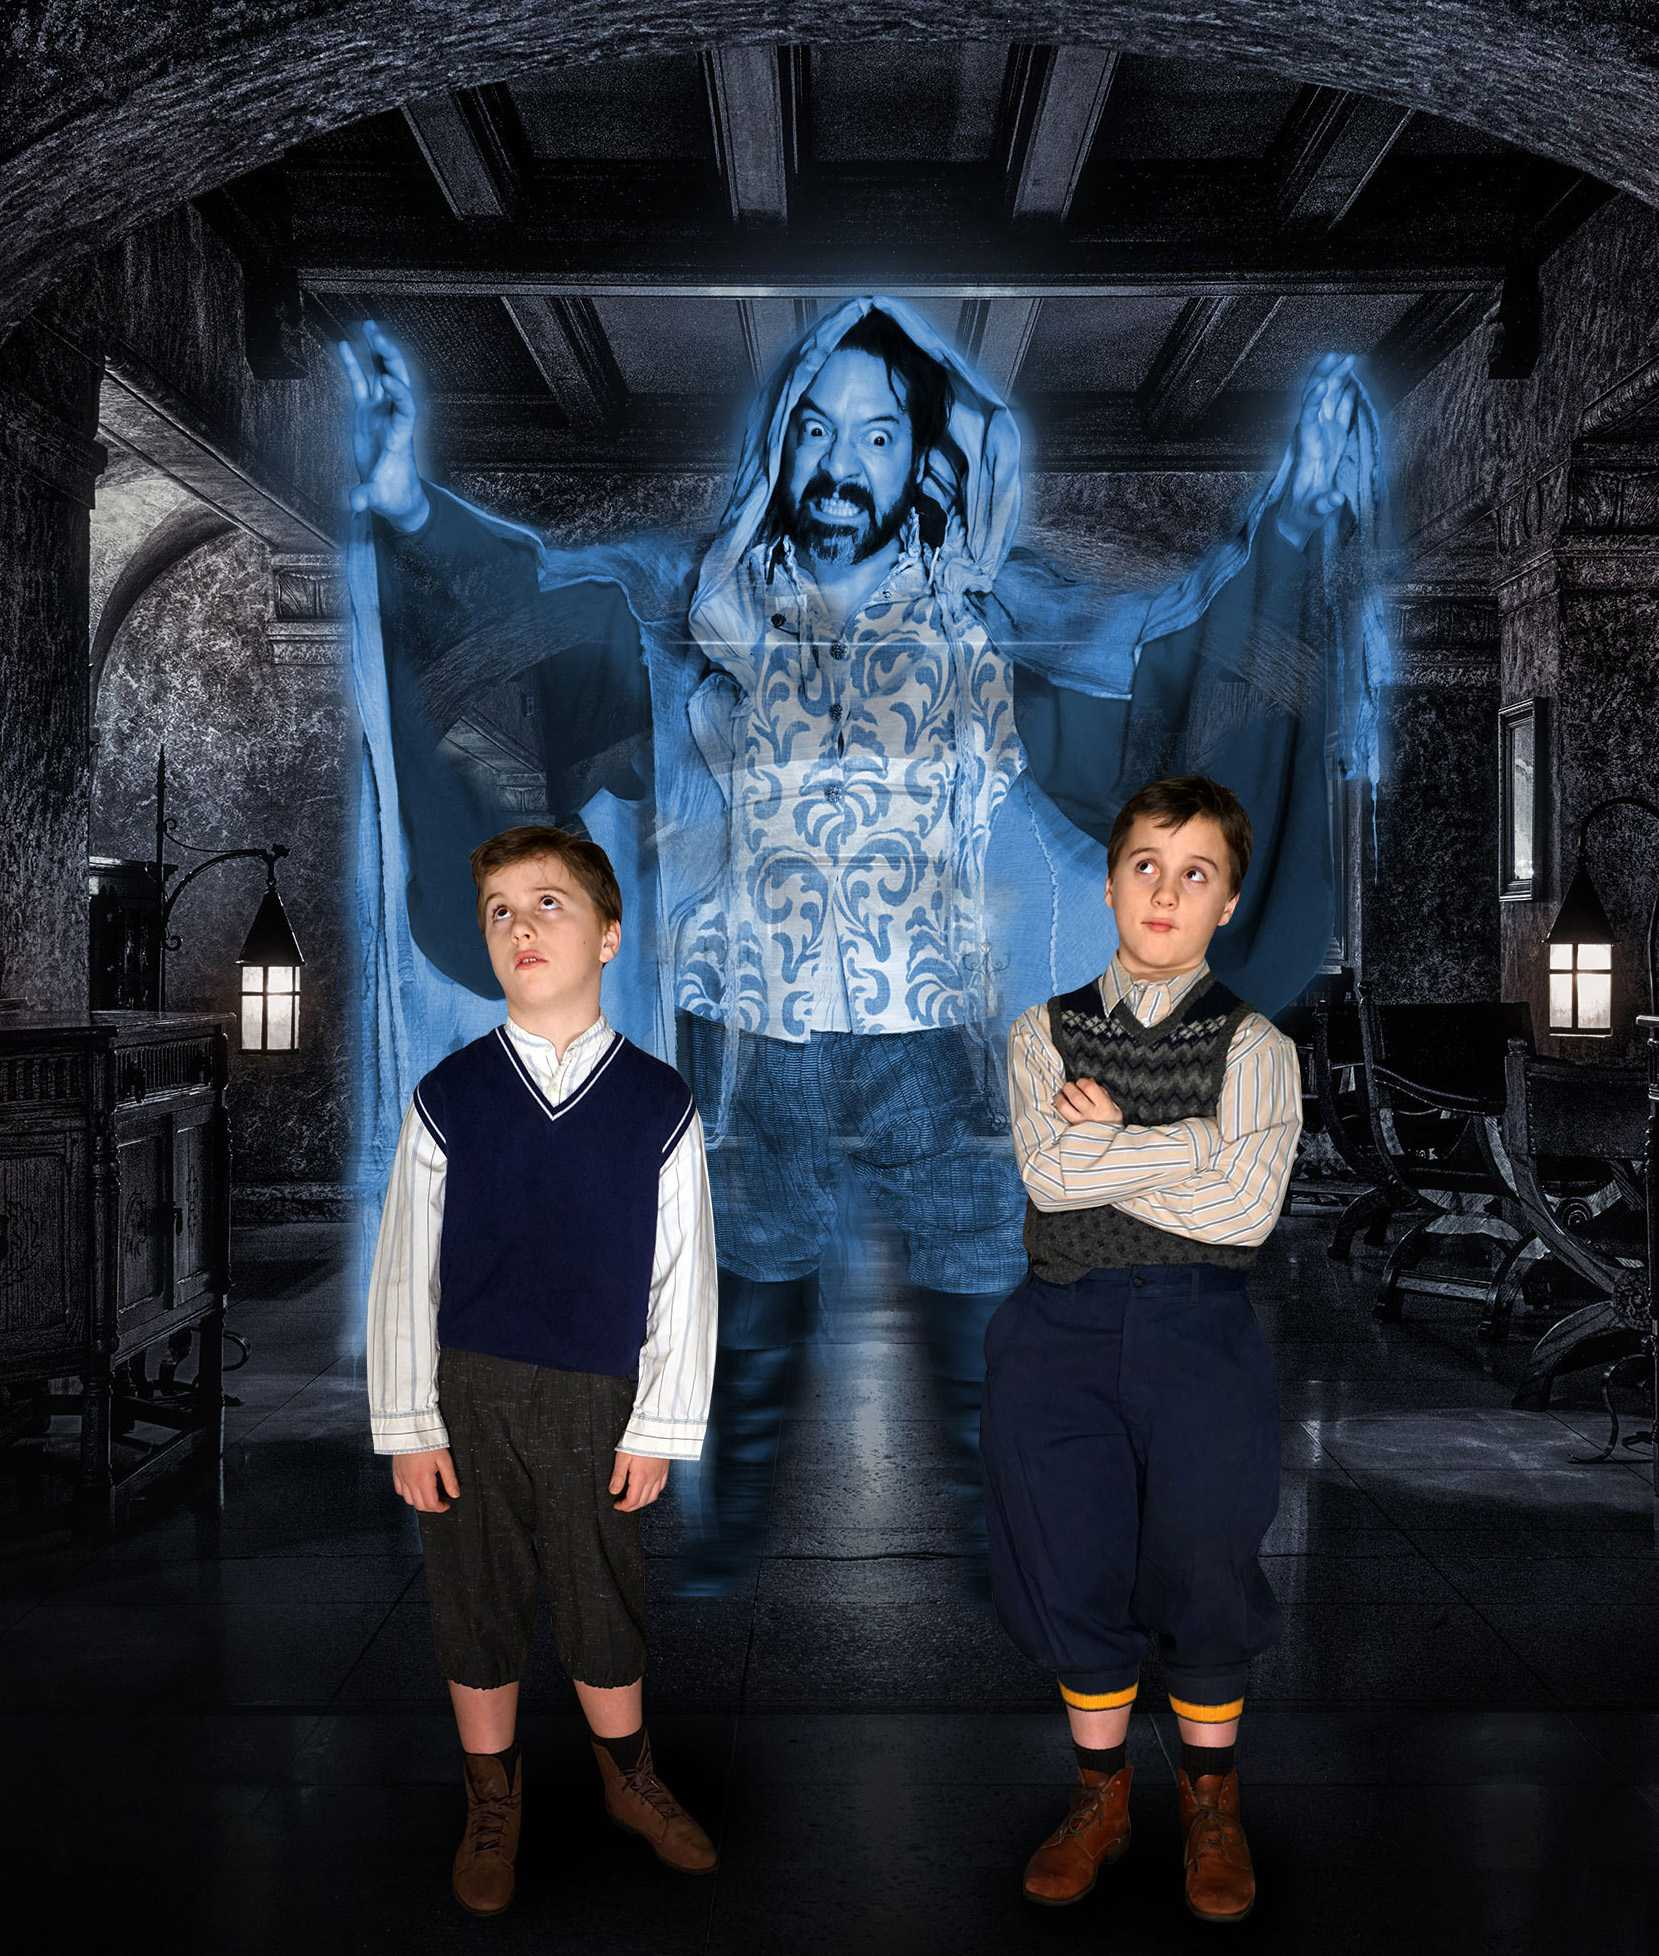 The spirit of Sir Simon Canterville has haunted his English mansion for more than 500 years, but he's appalled at the invasion of his home by Americans and determined to scare them out. (back: Mark L. Mattison; front: Edwin Henderson, left, and Emmett Henderson, right). Photo courtesy of Bob Suh.